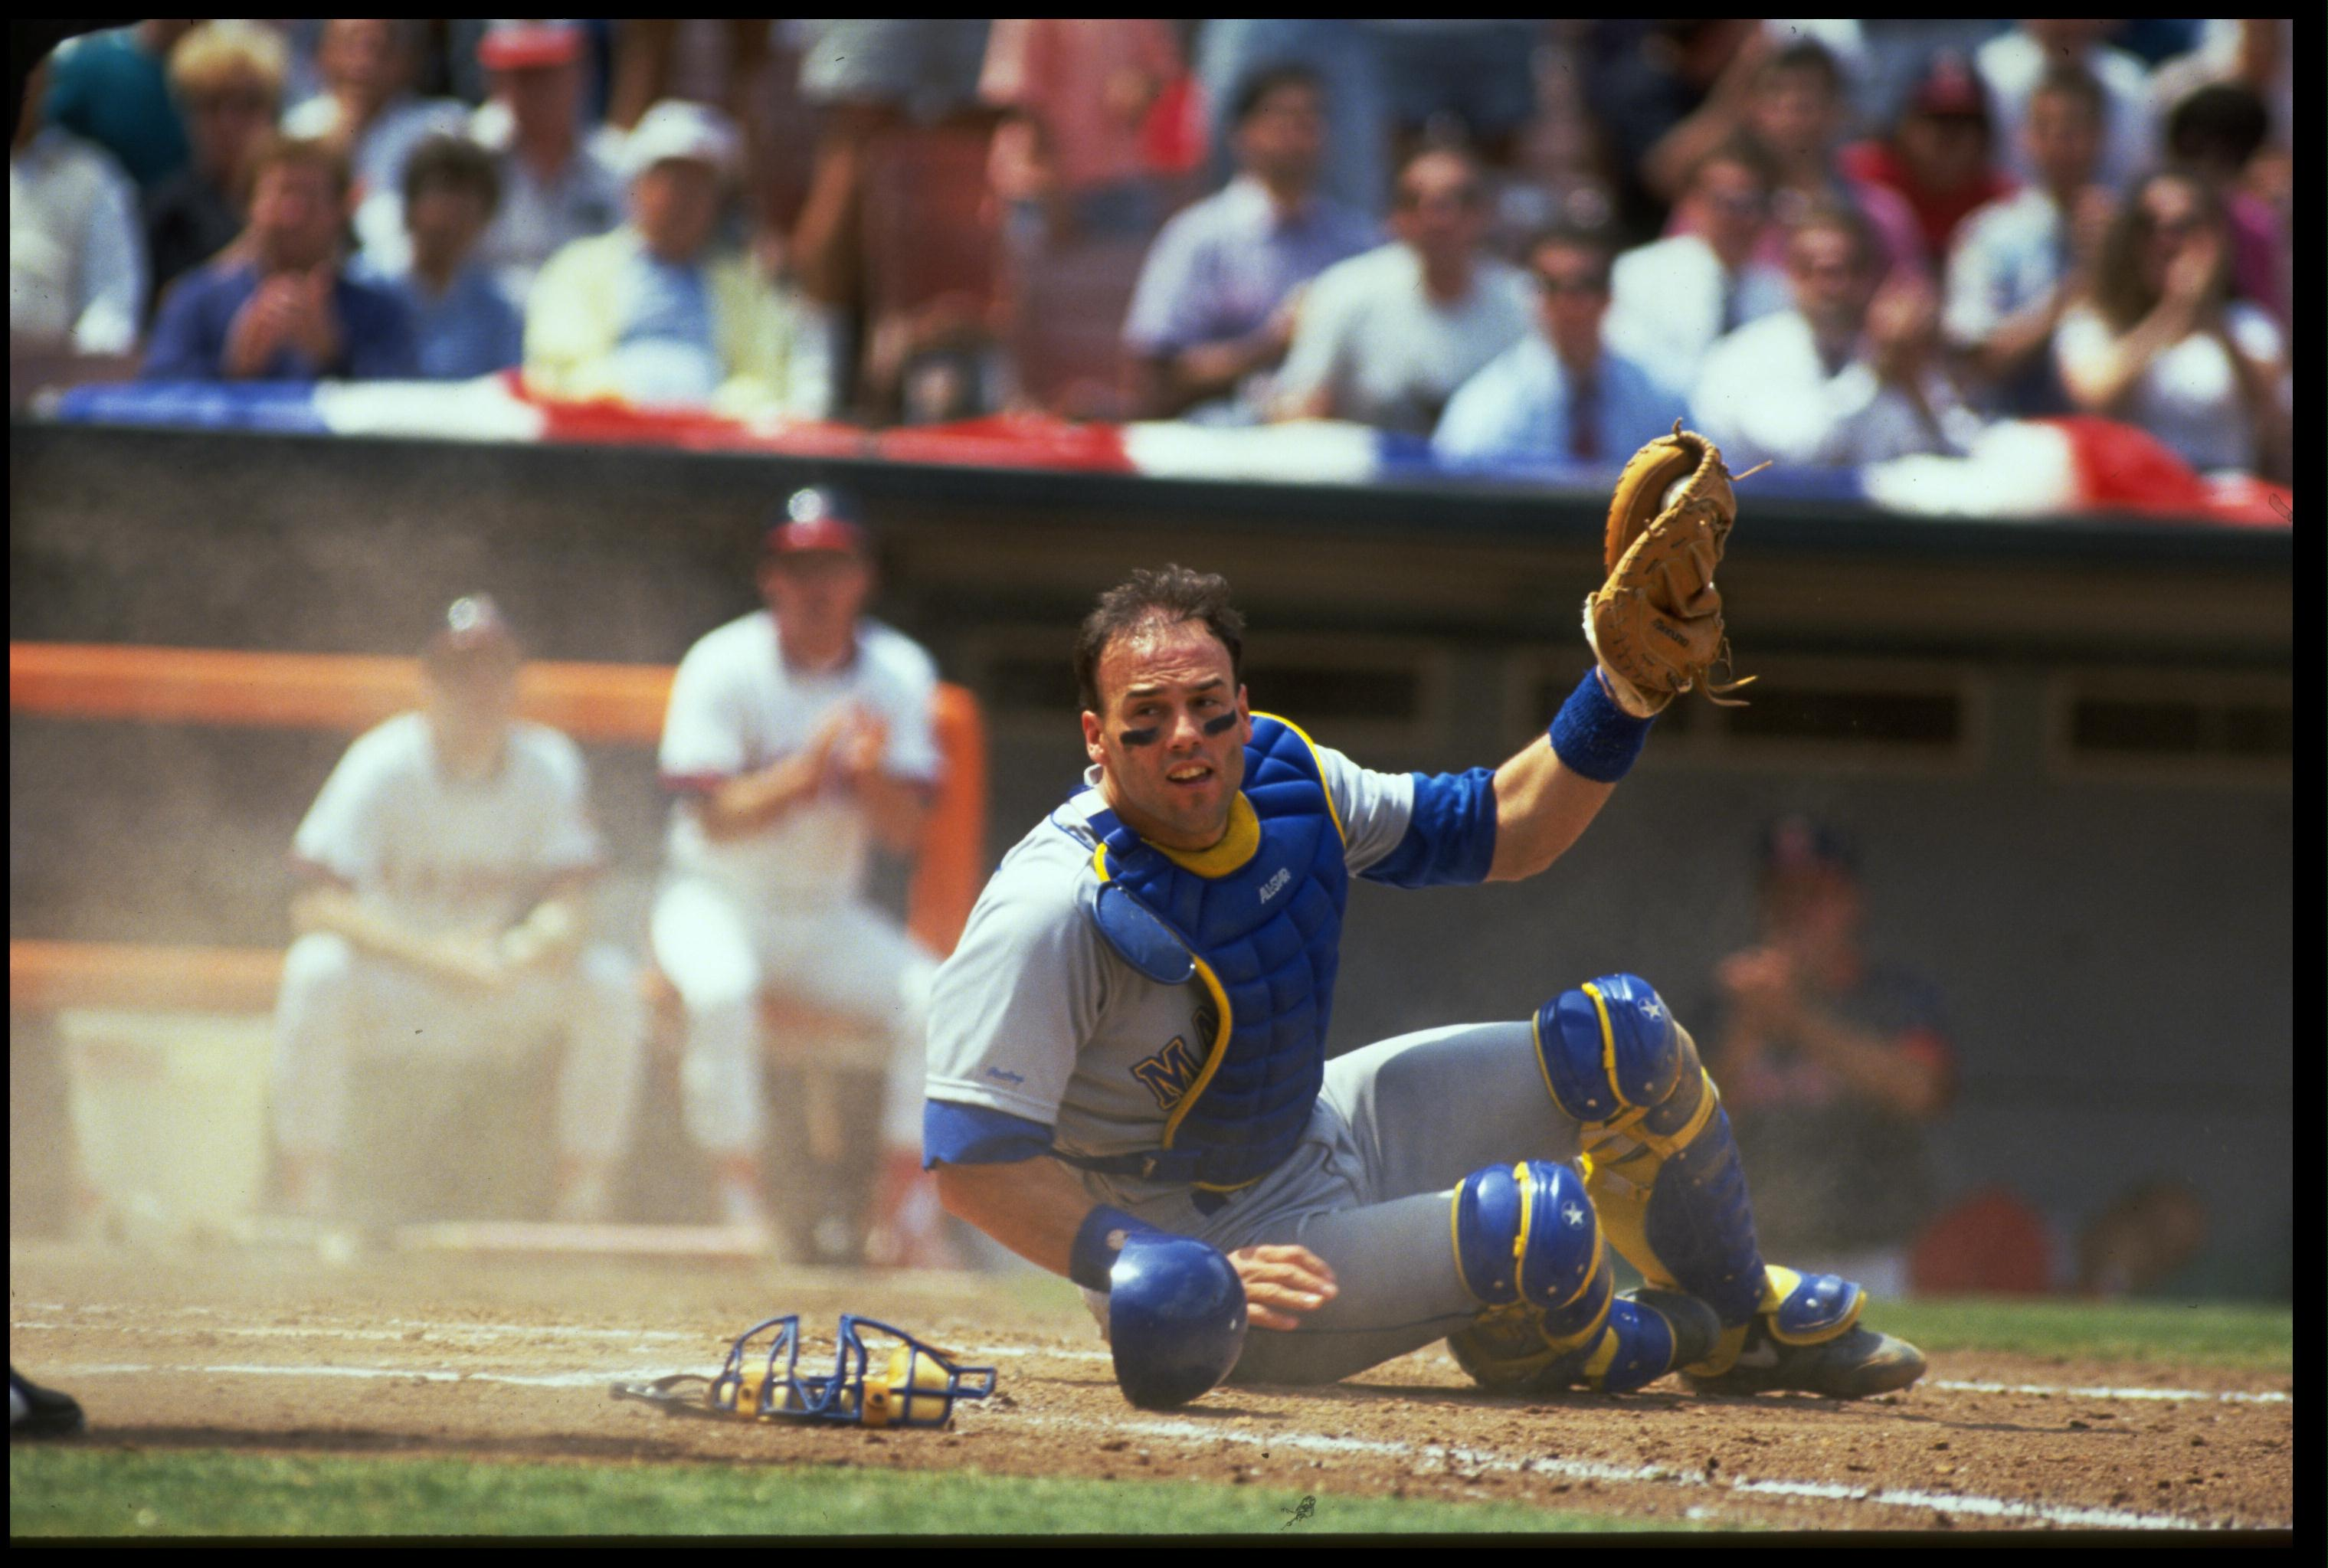 24 APR 1991:  SEATTLE MARINERS CATCHER DAVE VALLE MAKES A PLAY DURING THE MARINERS VERSUS CALIFORNIA ANGELS GAME AT ANAHEIM STADIUM IN ANAHEIM, CALIFORNIA.  MANDATORY CREDIT:  STEPHEN DUNN/ALLSPORT USA